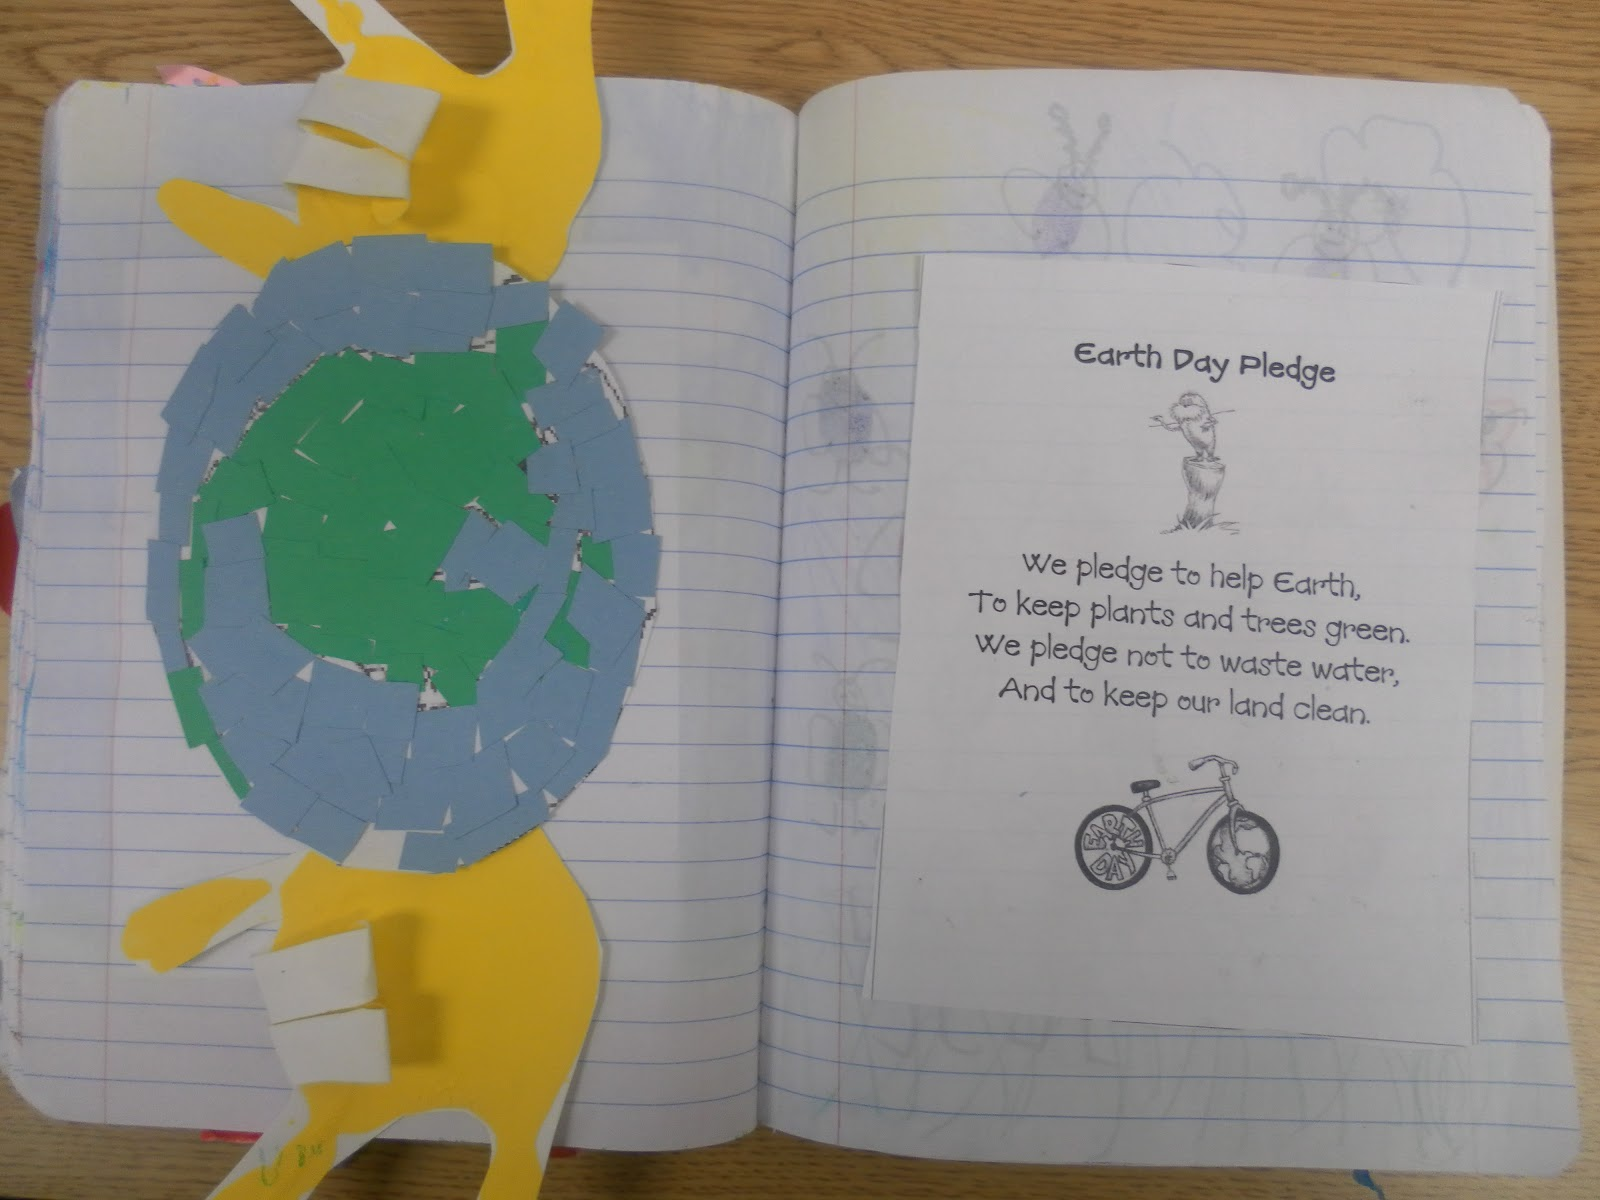 Just 4 Teachers Sharing Across Borders Earth Day Pledge Poem And Activity